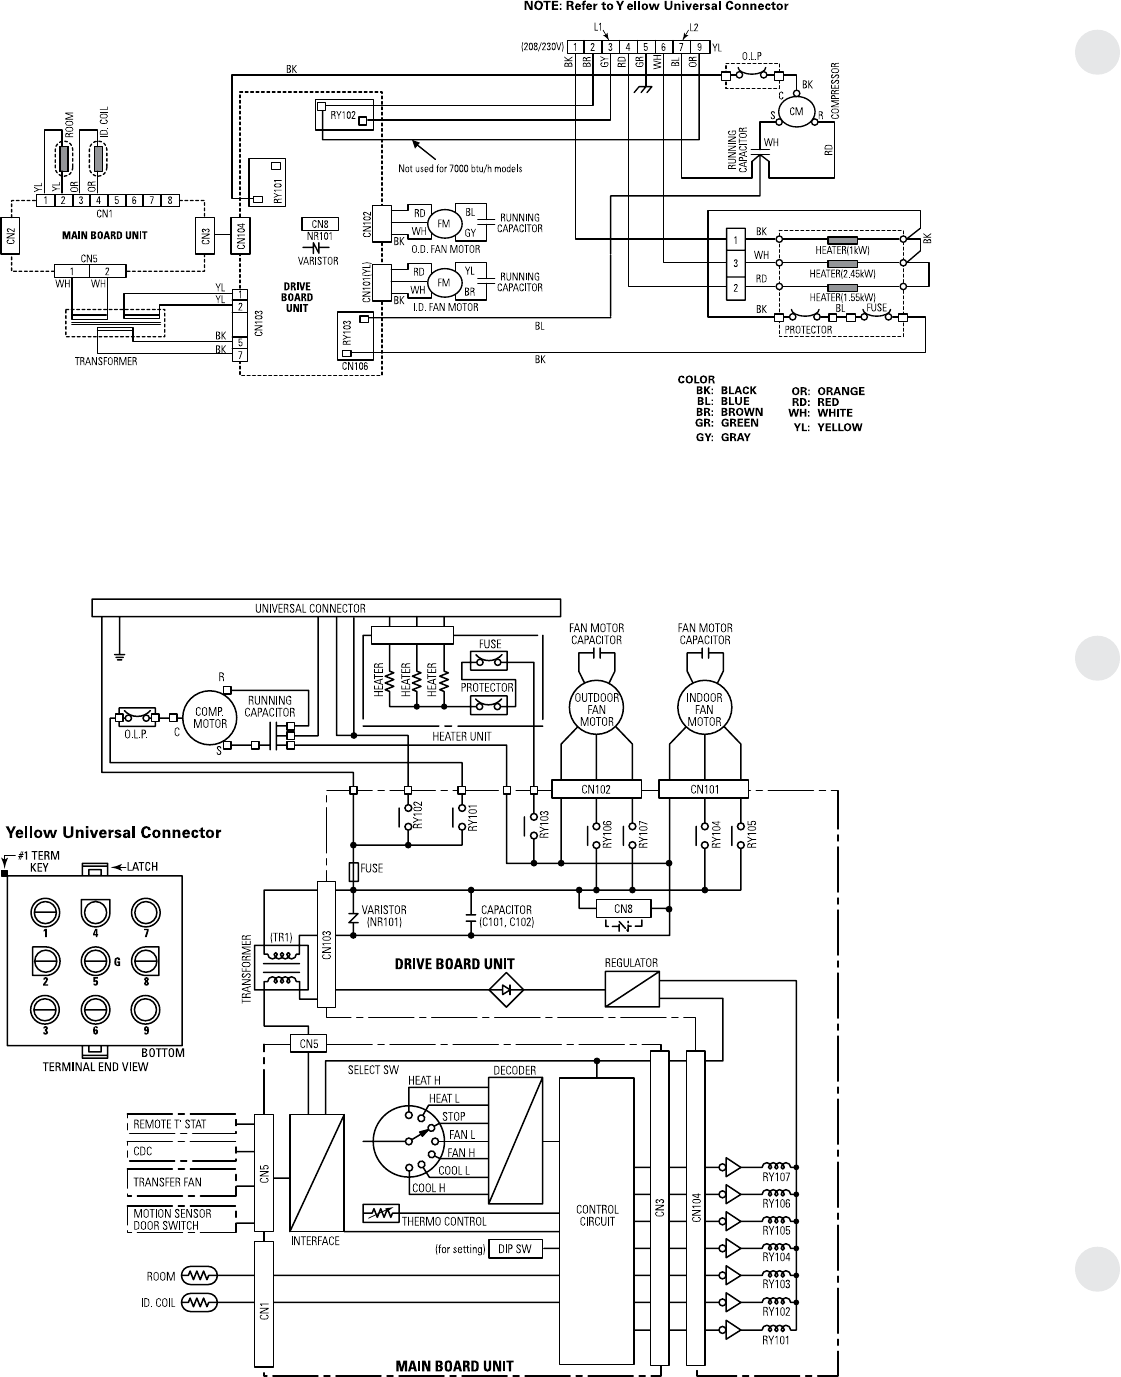 Low Voltage Wiring Diagram For Air Conditioner